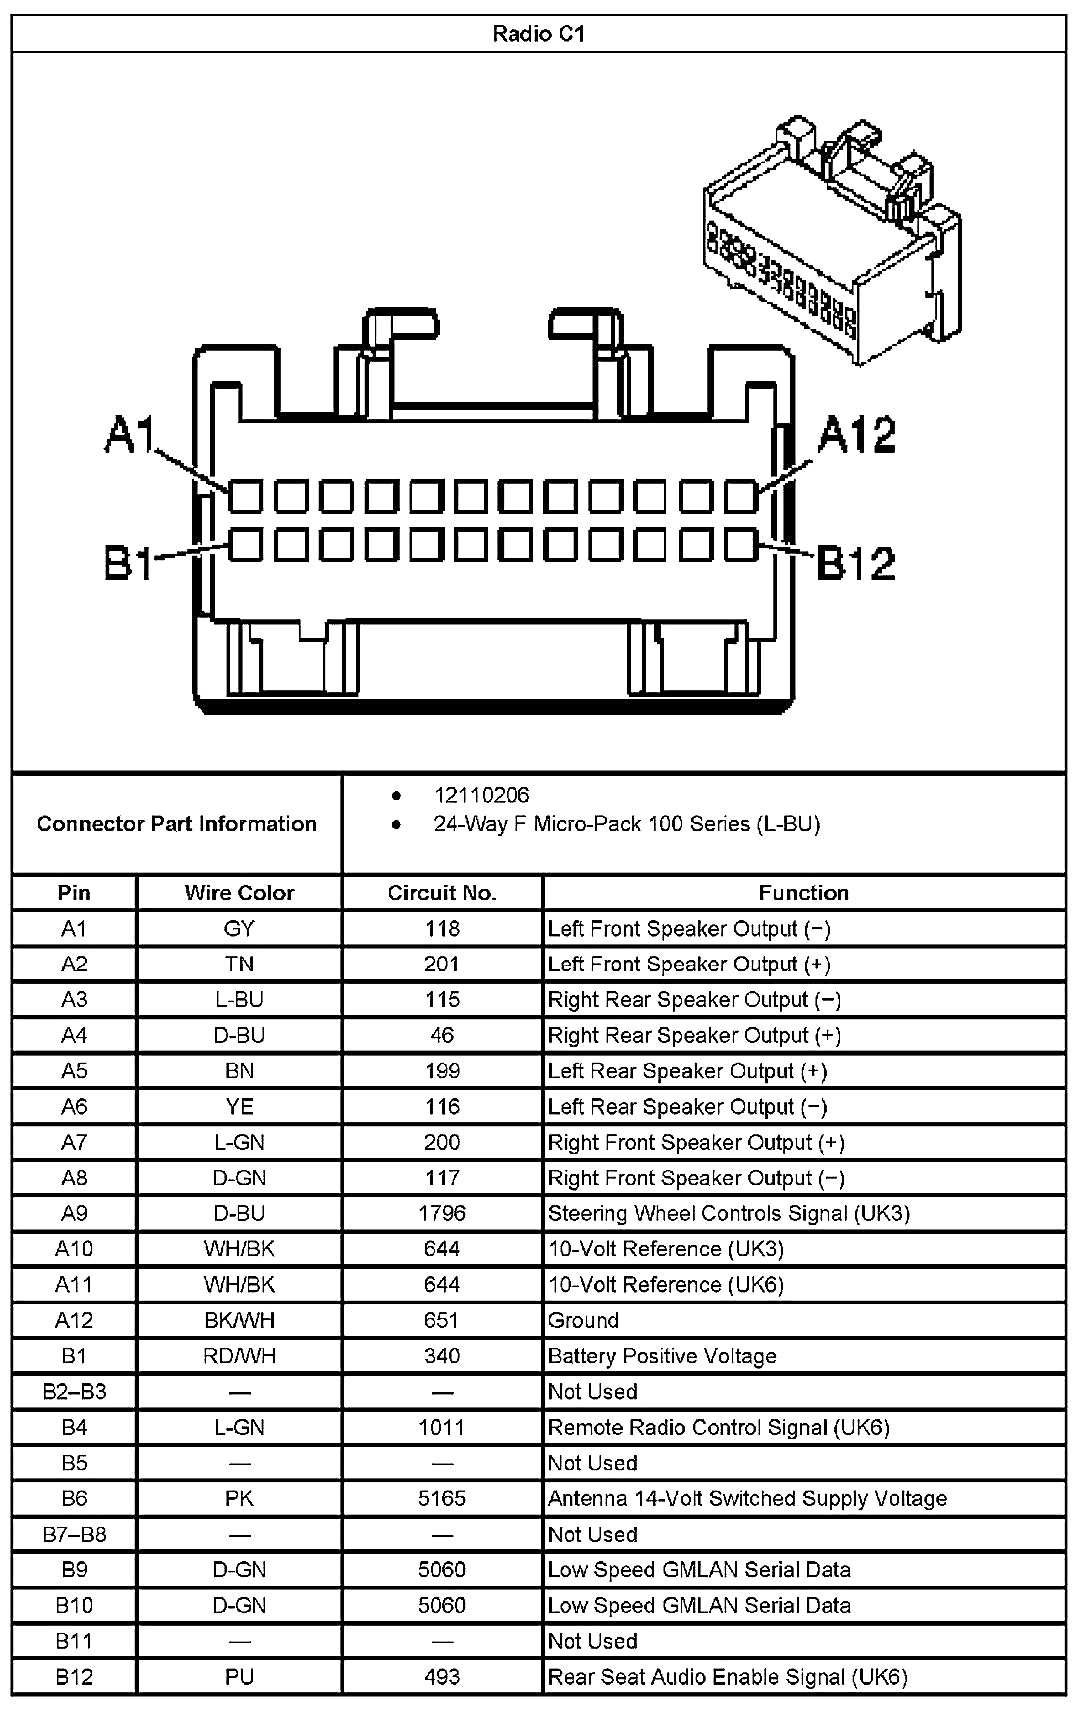 Jvc Kd-r330 Wiring Diagram : kd-r330, wiring, diagram, DIAGRAM], Stereo, Wiring, Diagram, Version, Quality, HASSEDIAGRAM.PROGETTOPEOPLE.IT